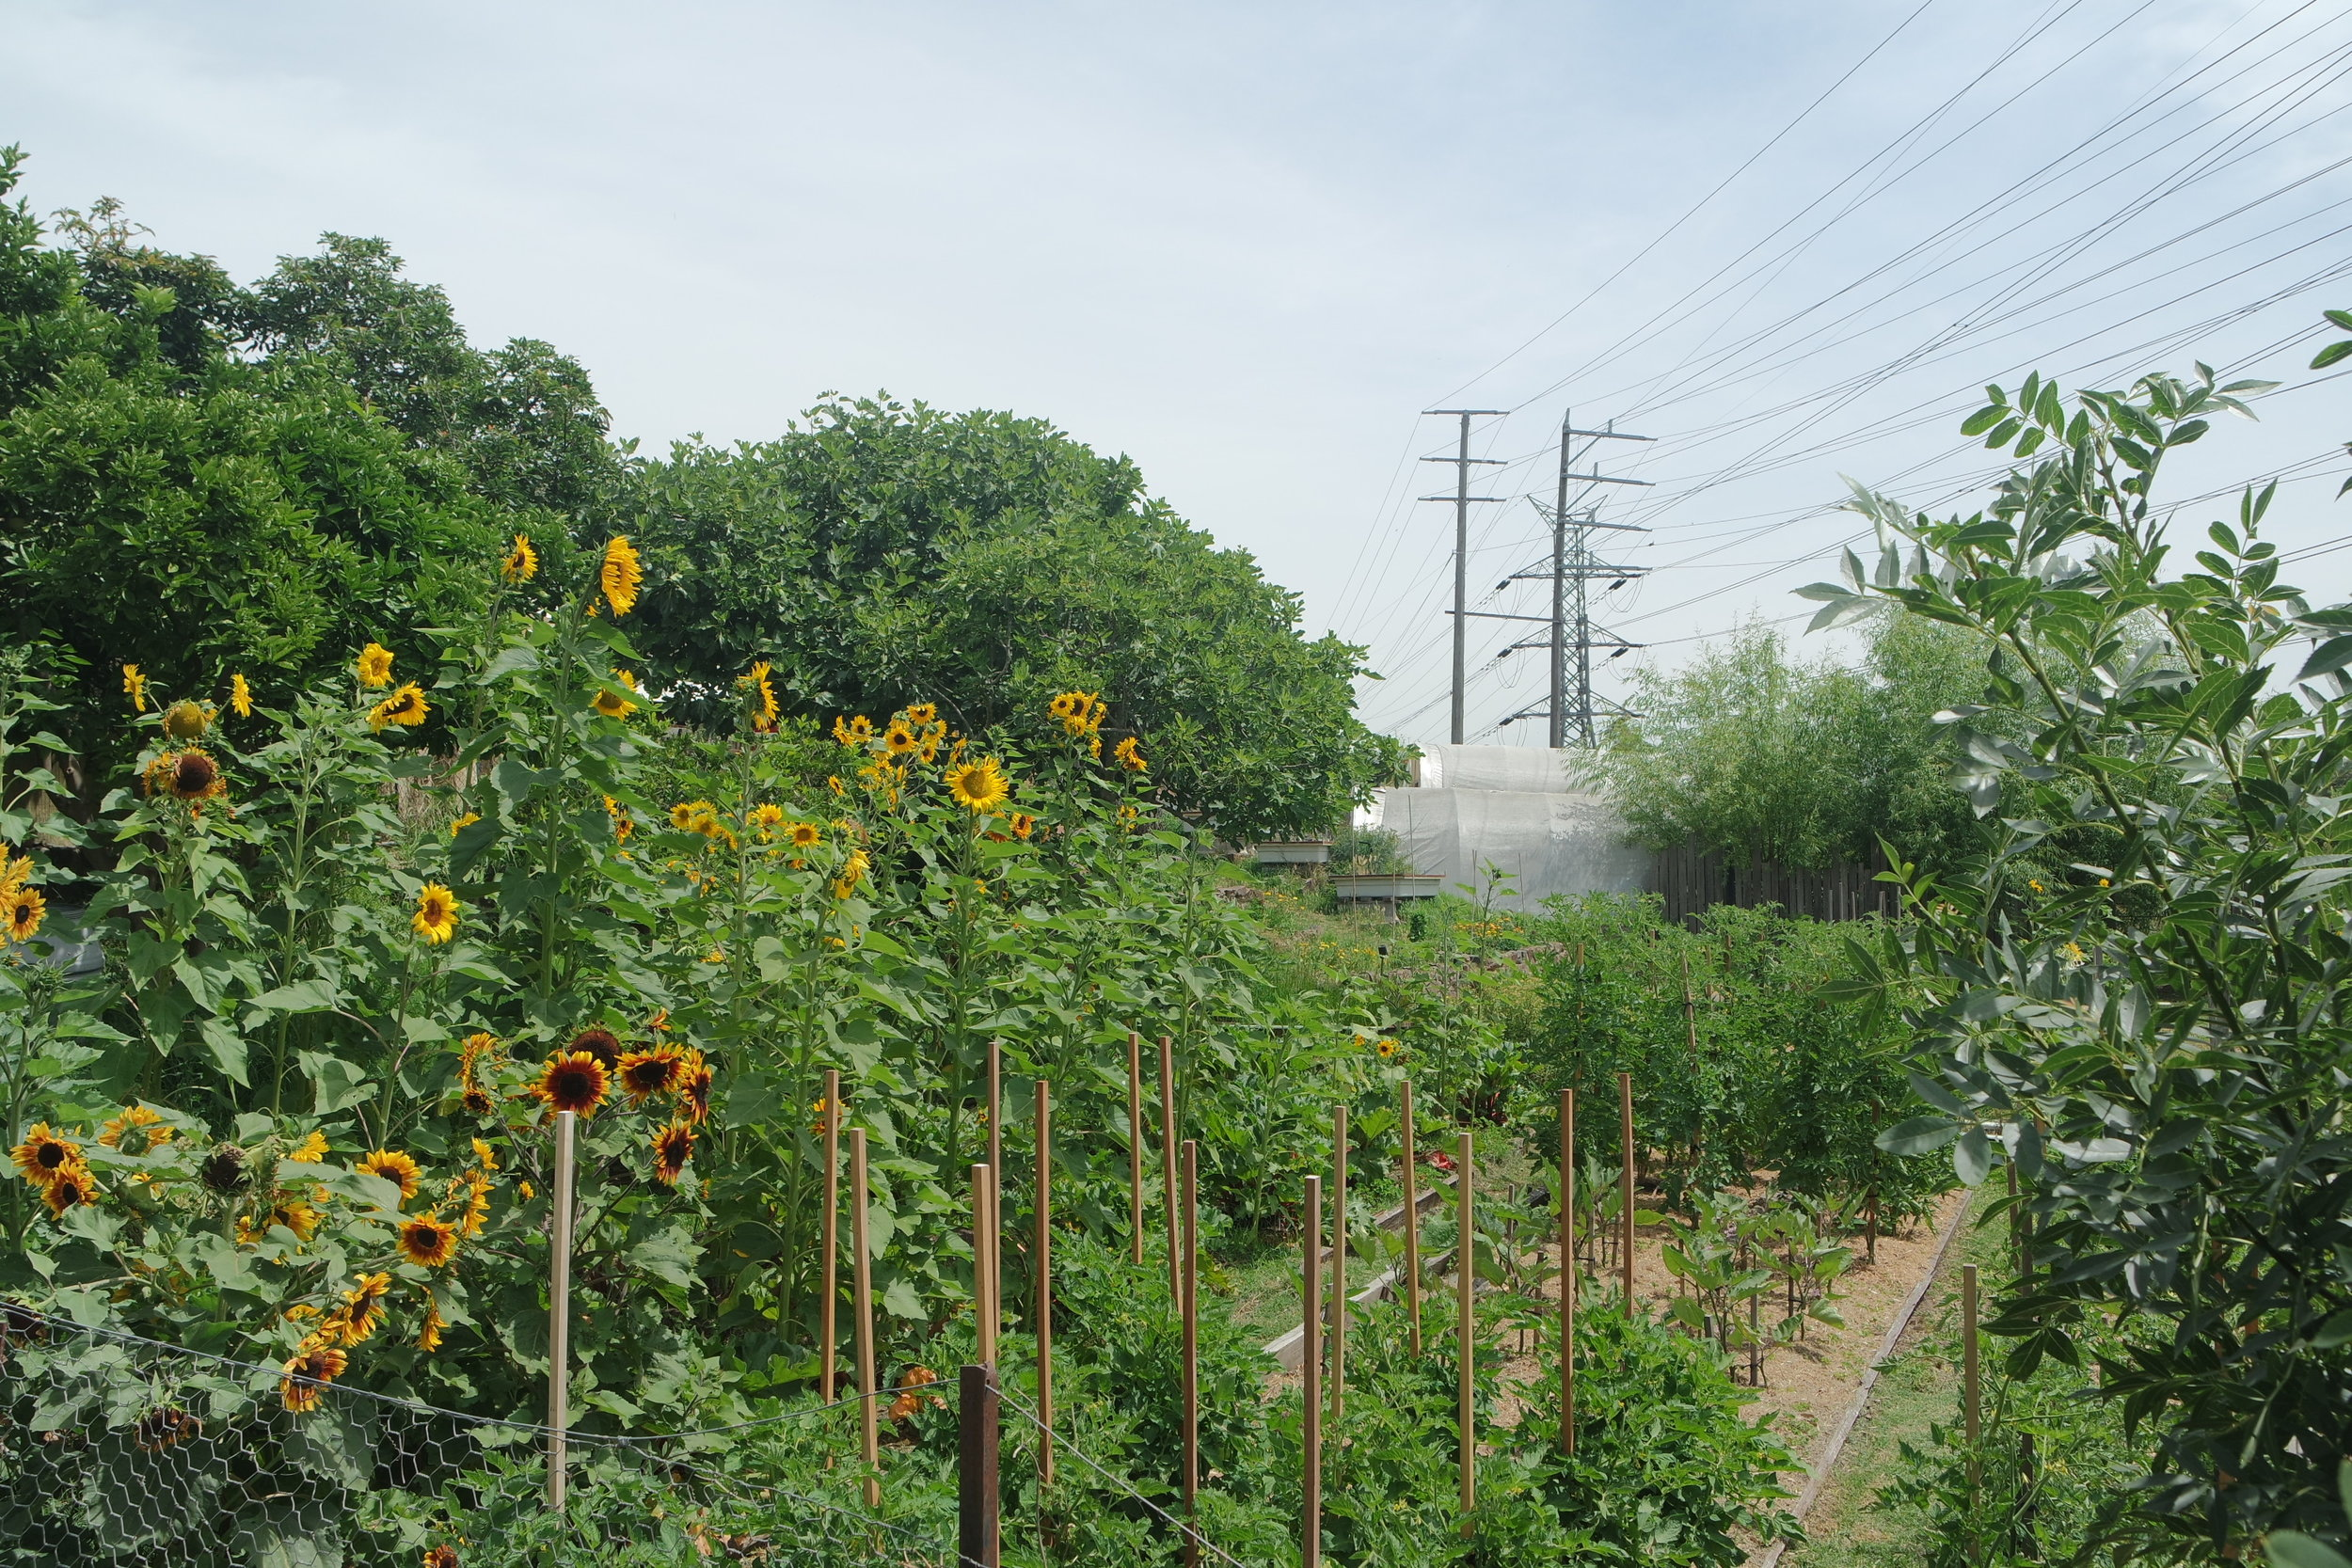 Well visible, the powerlines help to remember the history of the land and CERES development.